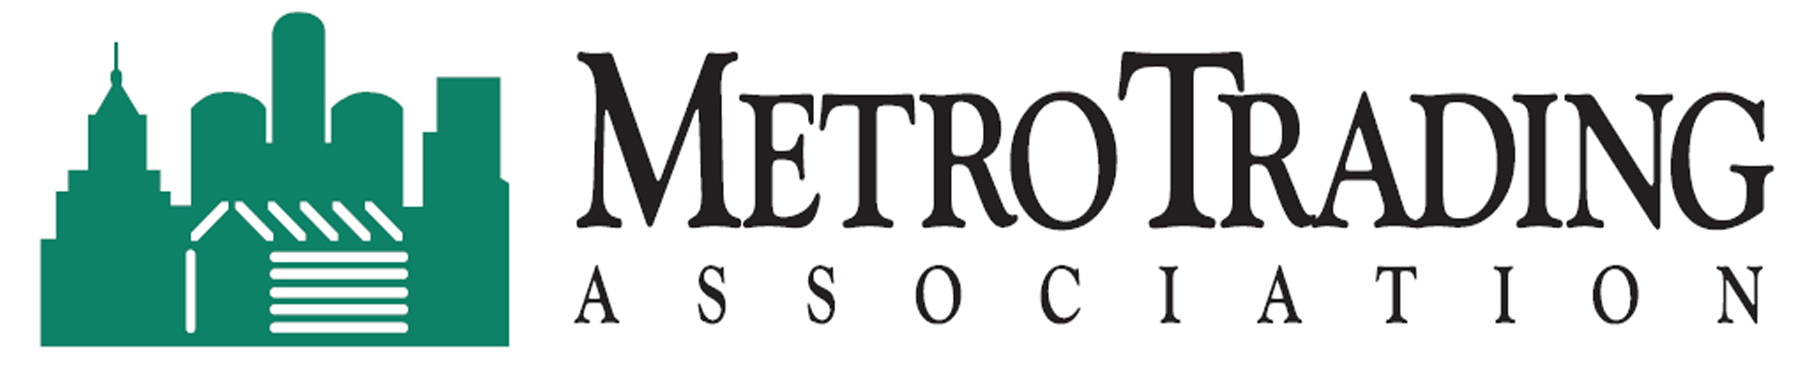 Membership Application | Metro Trading Association